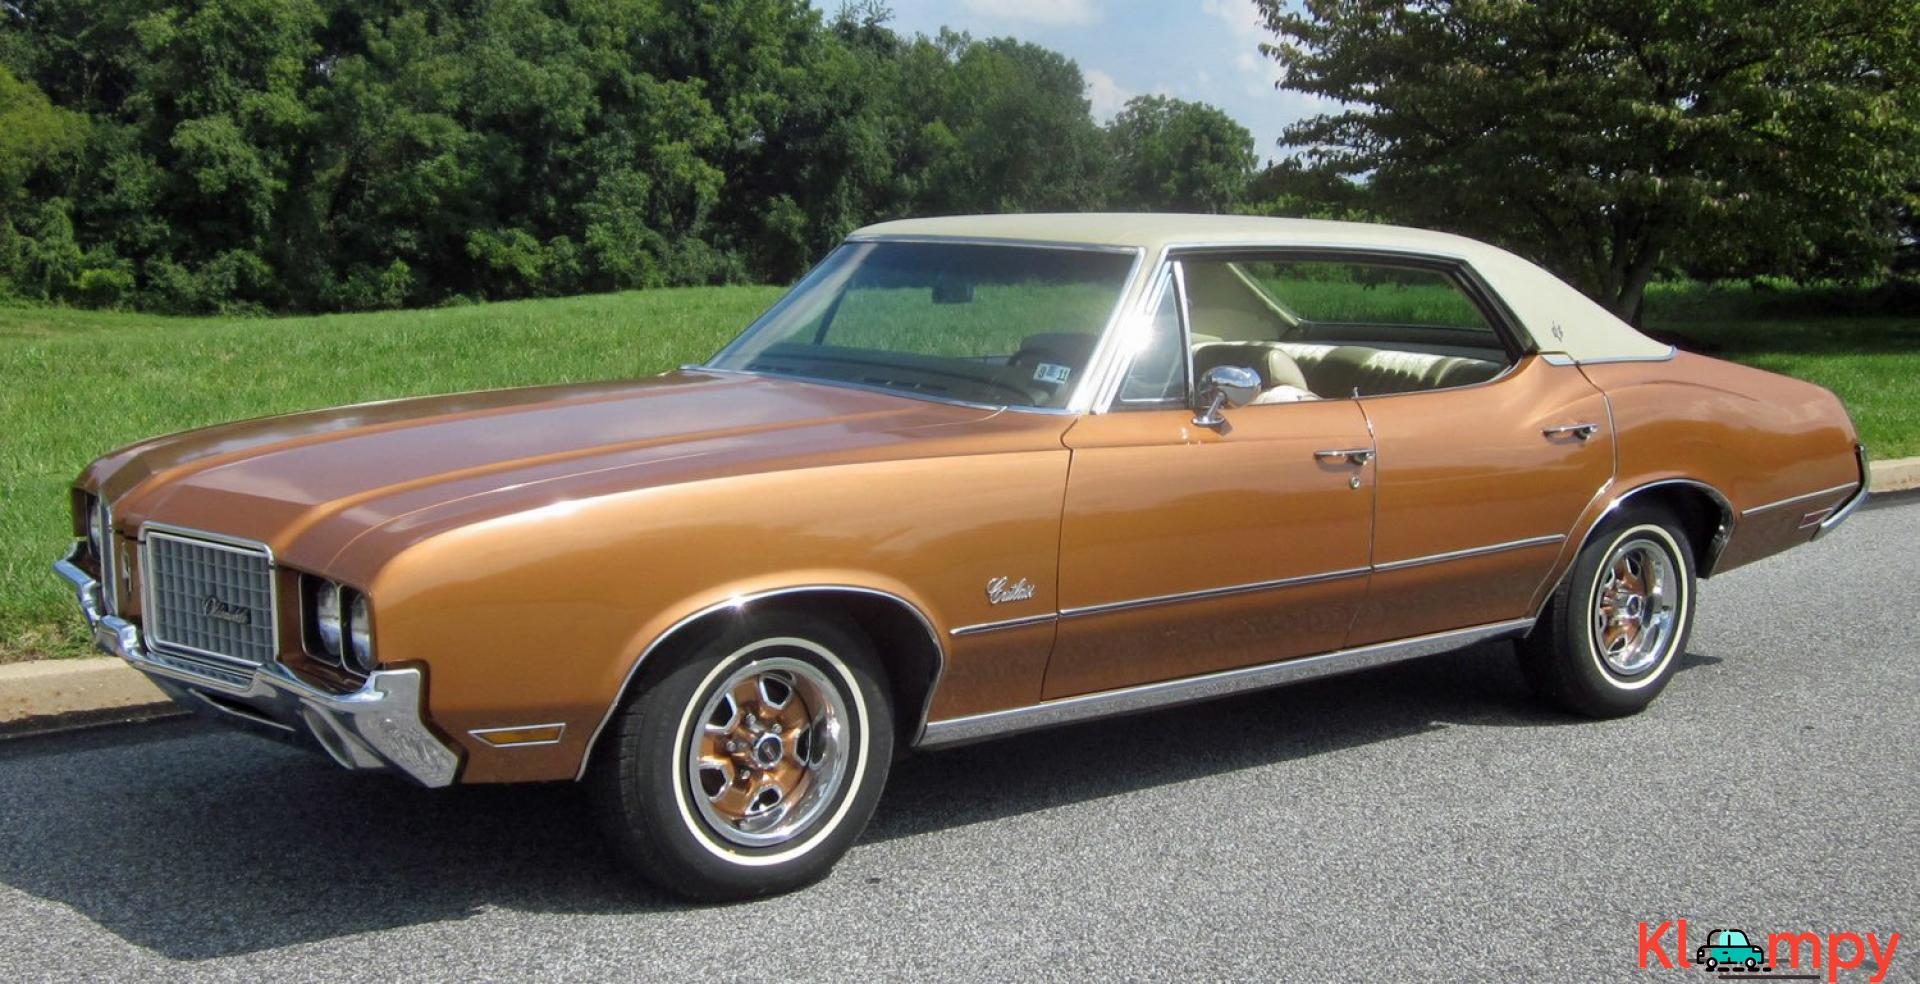 1972 Oldsmobile Cutlass Sport Sedan V8 - 1/20